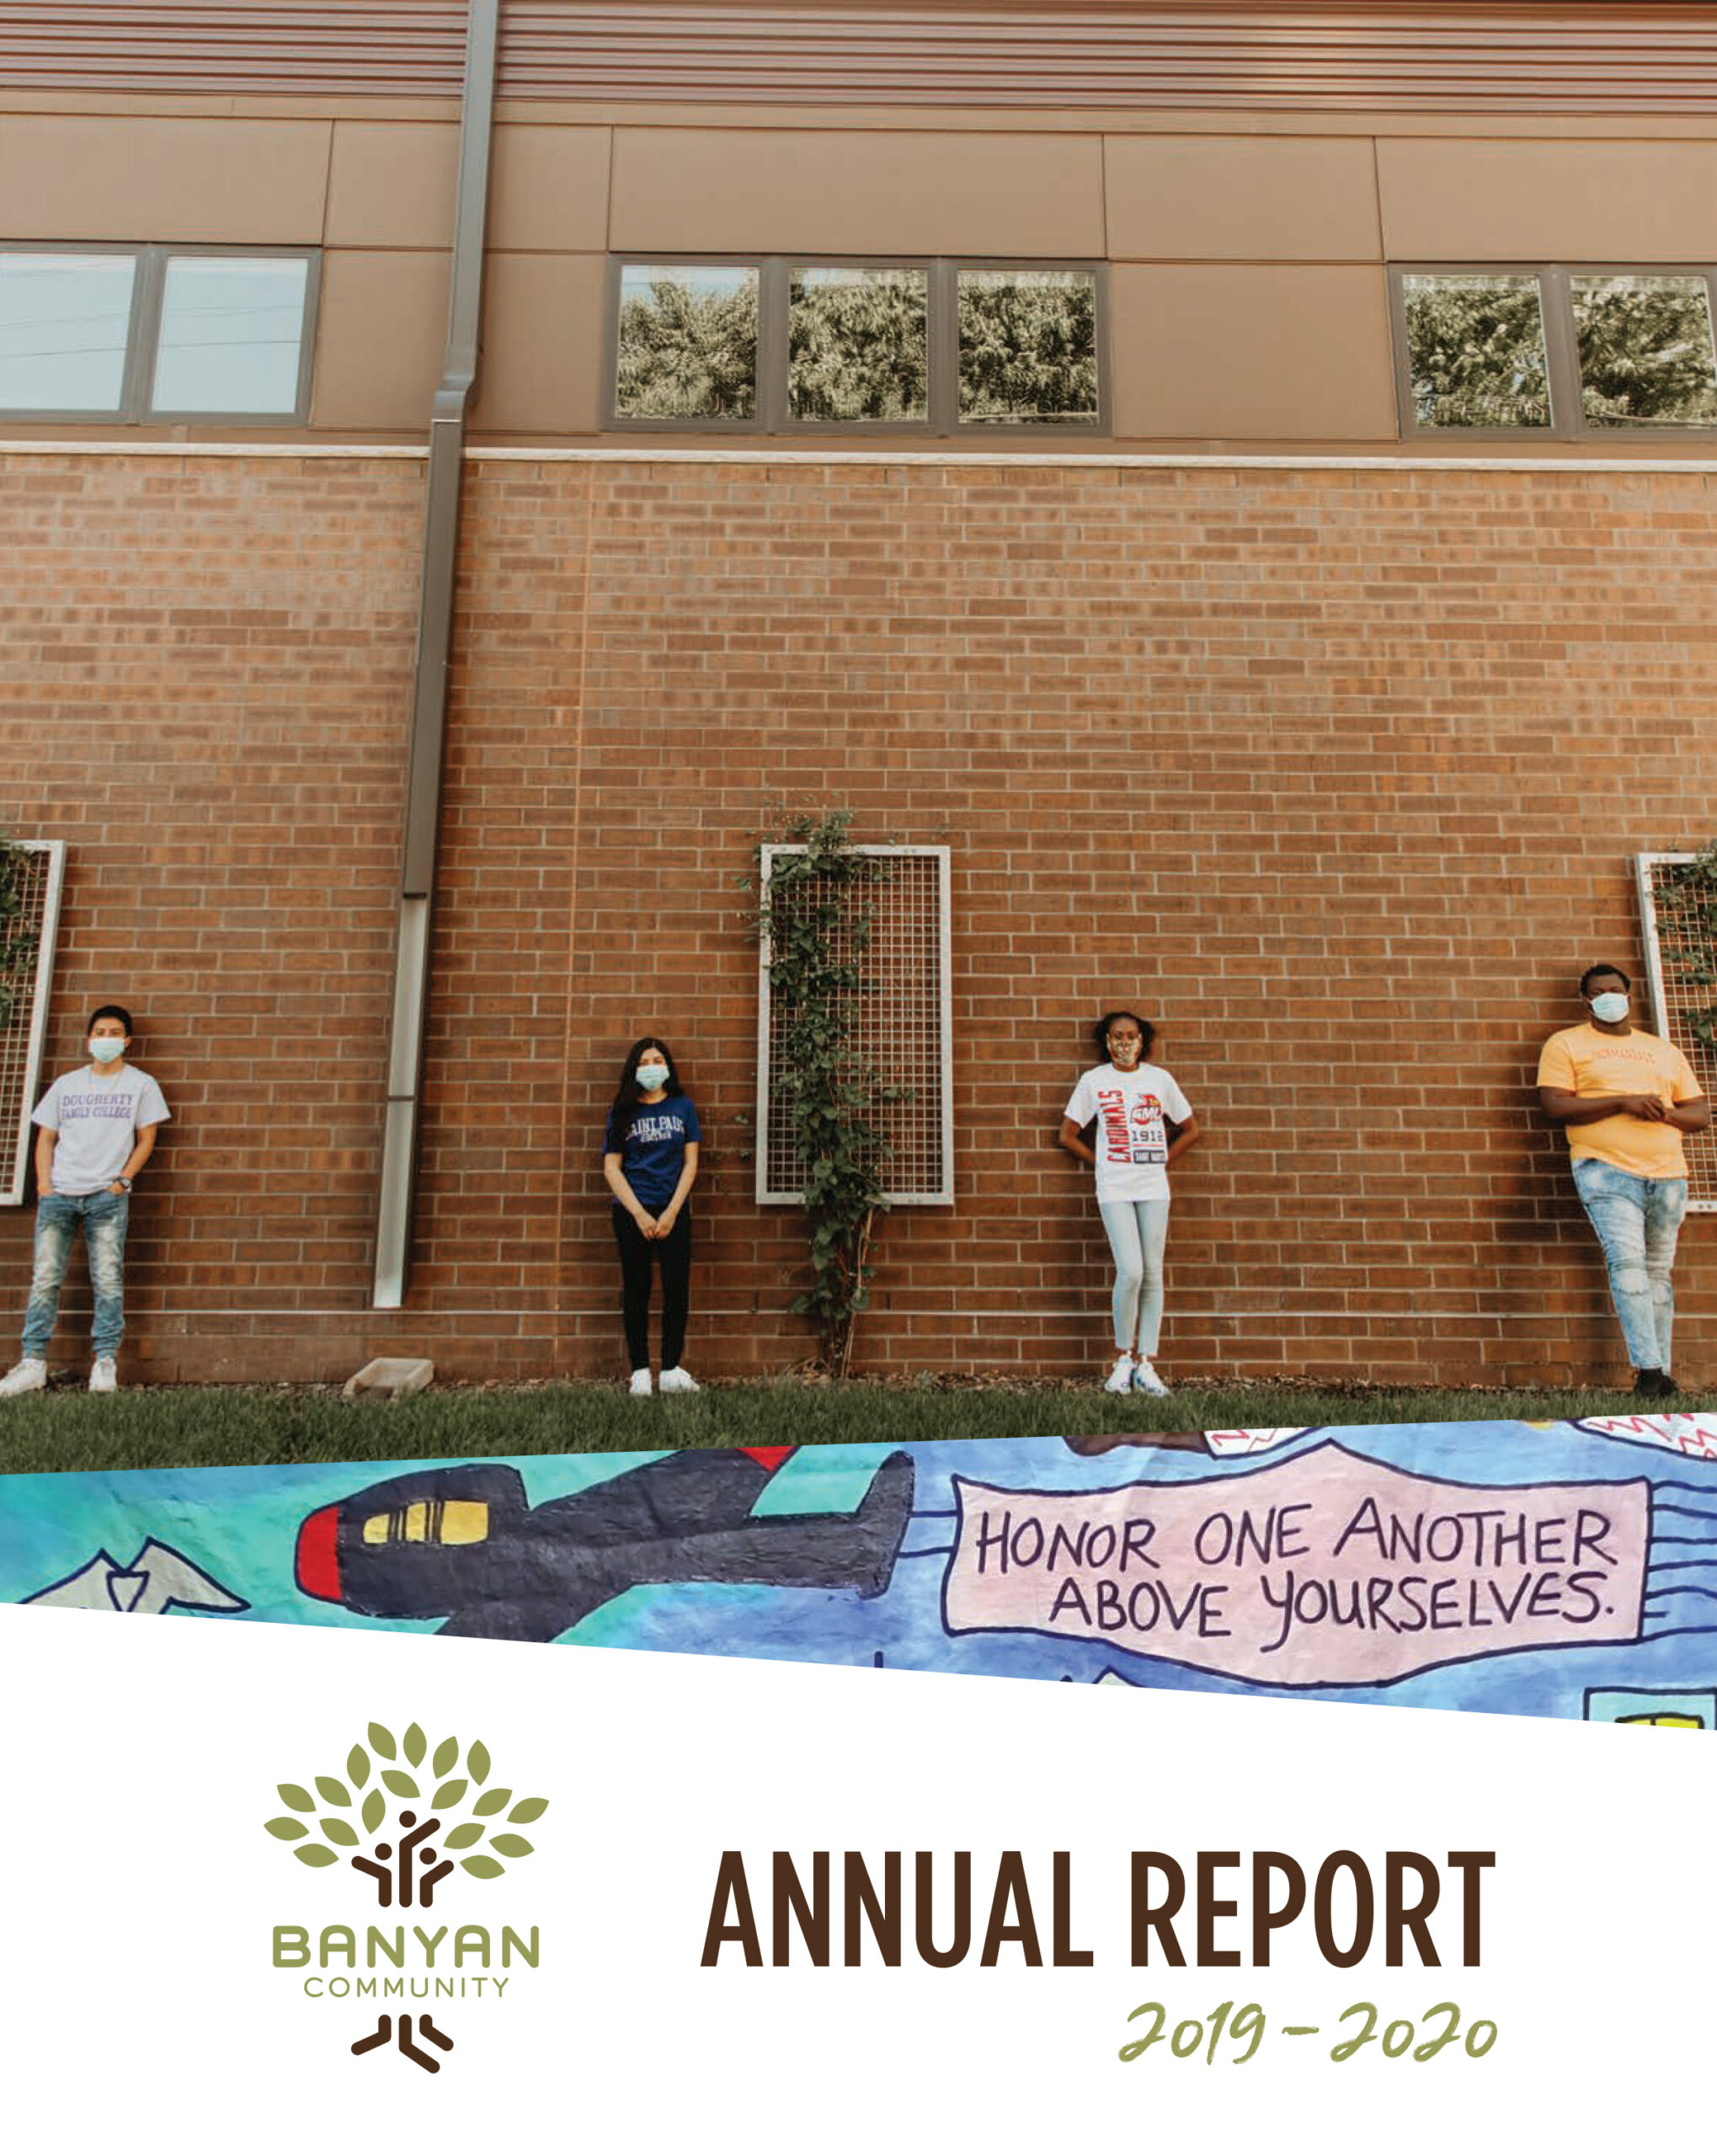 Banyan Community Annual Report